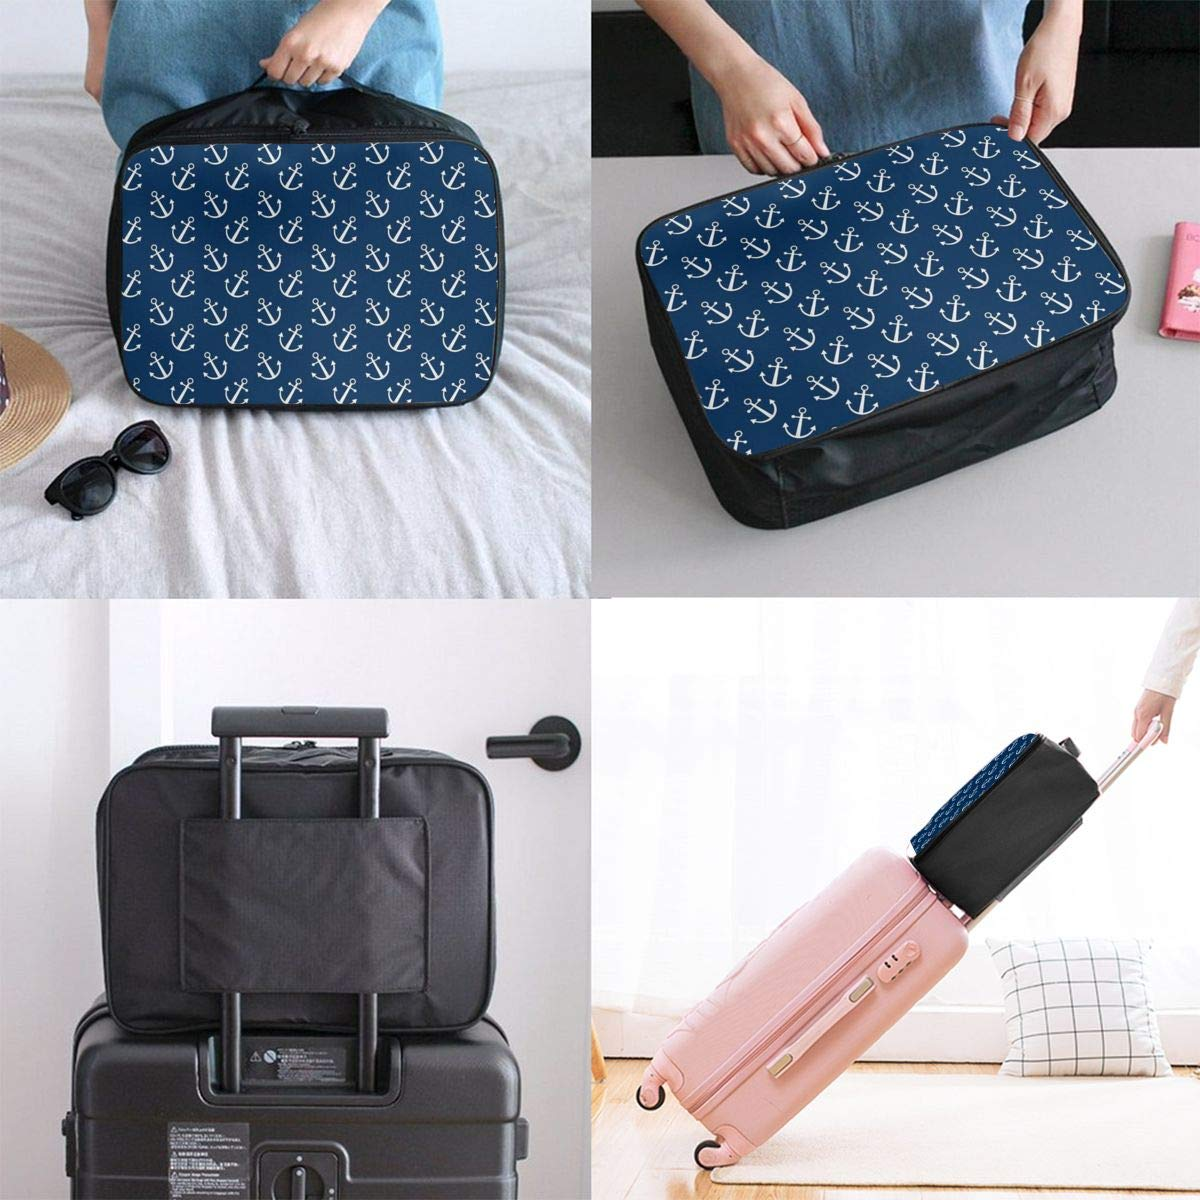 Lightweight Large Capacity Duffel Portable Luggage Bag Navy Anchors Pattern Travel Waterproof Foldable Storage Carry Tote Bag